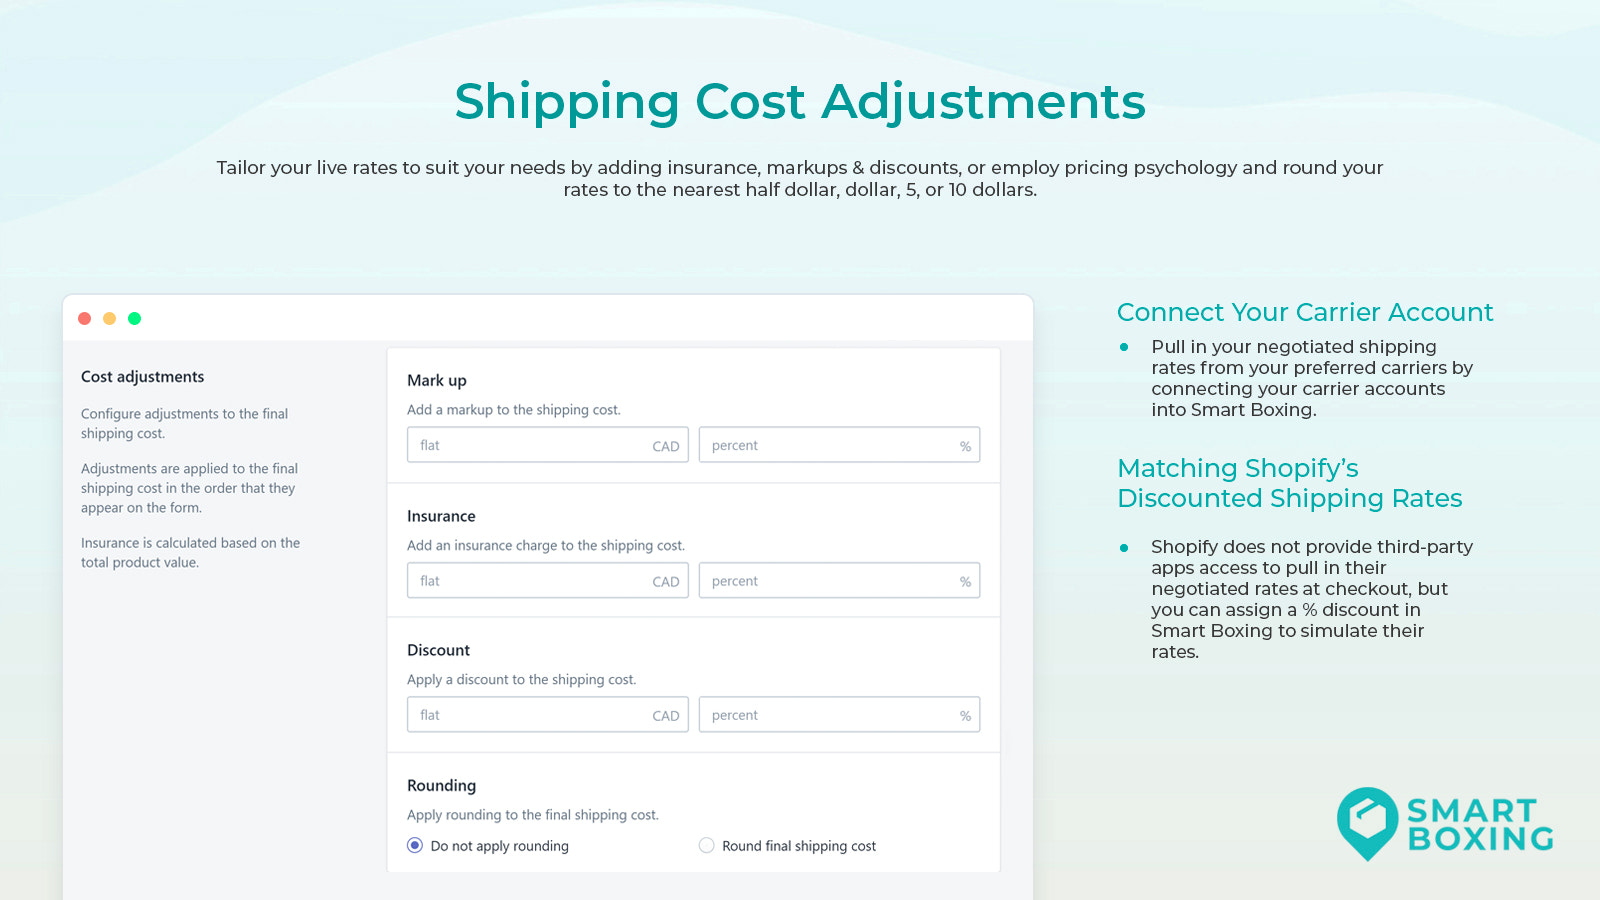 Shipping cost adjustment gives control over dimensional rates